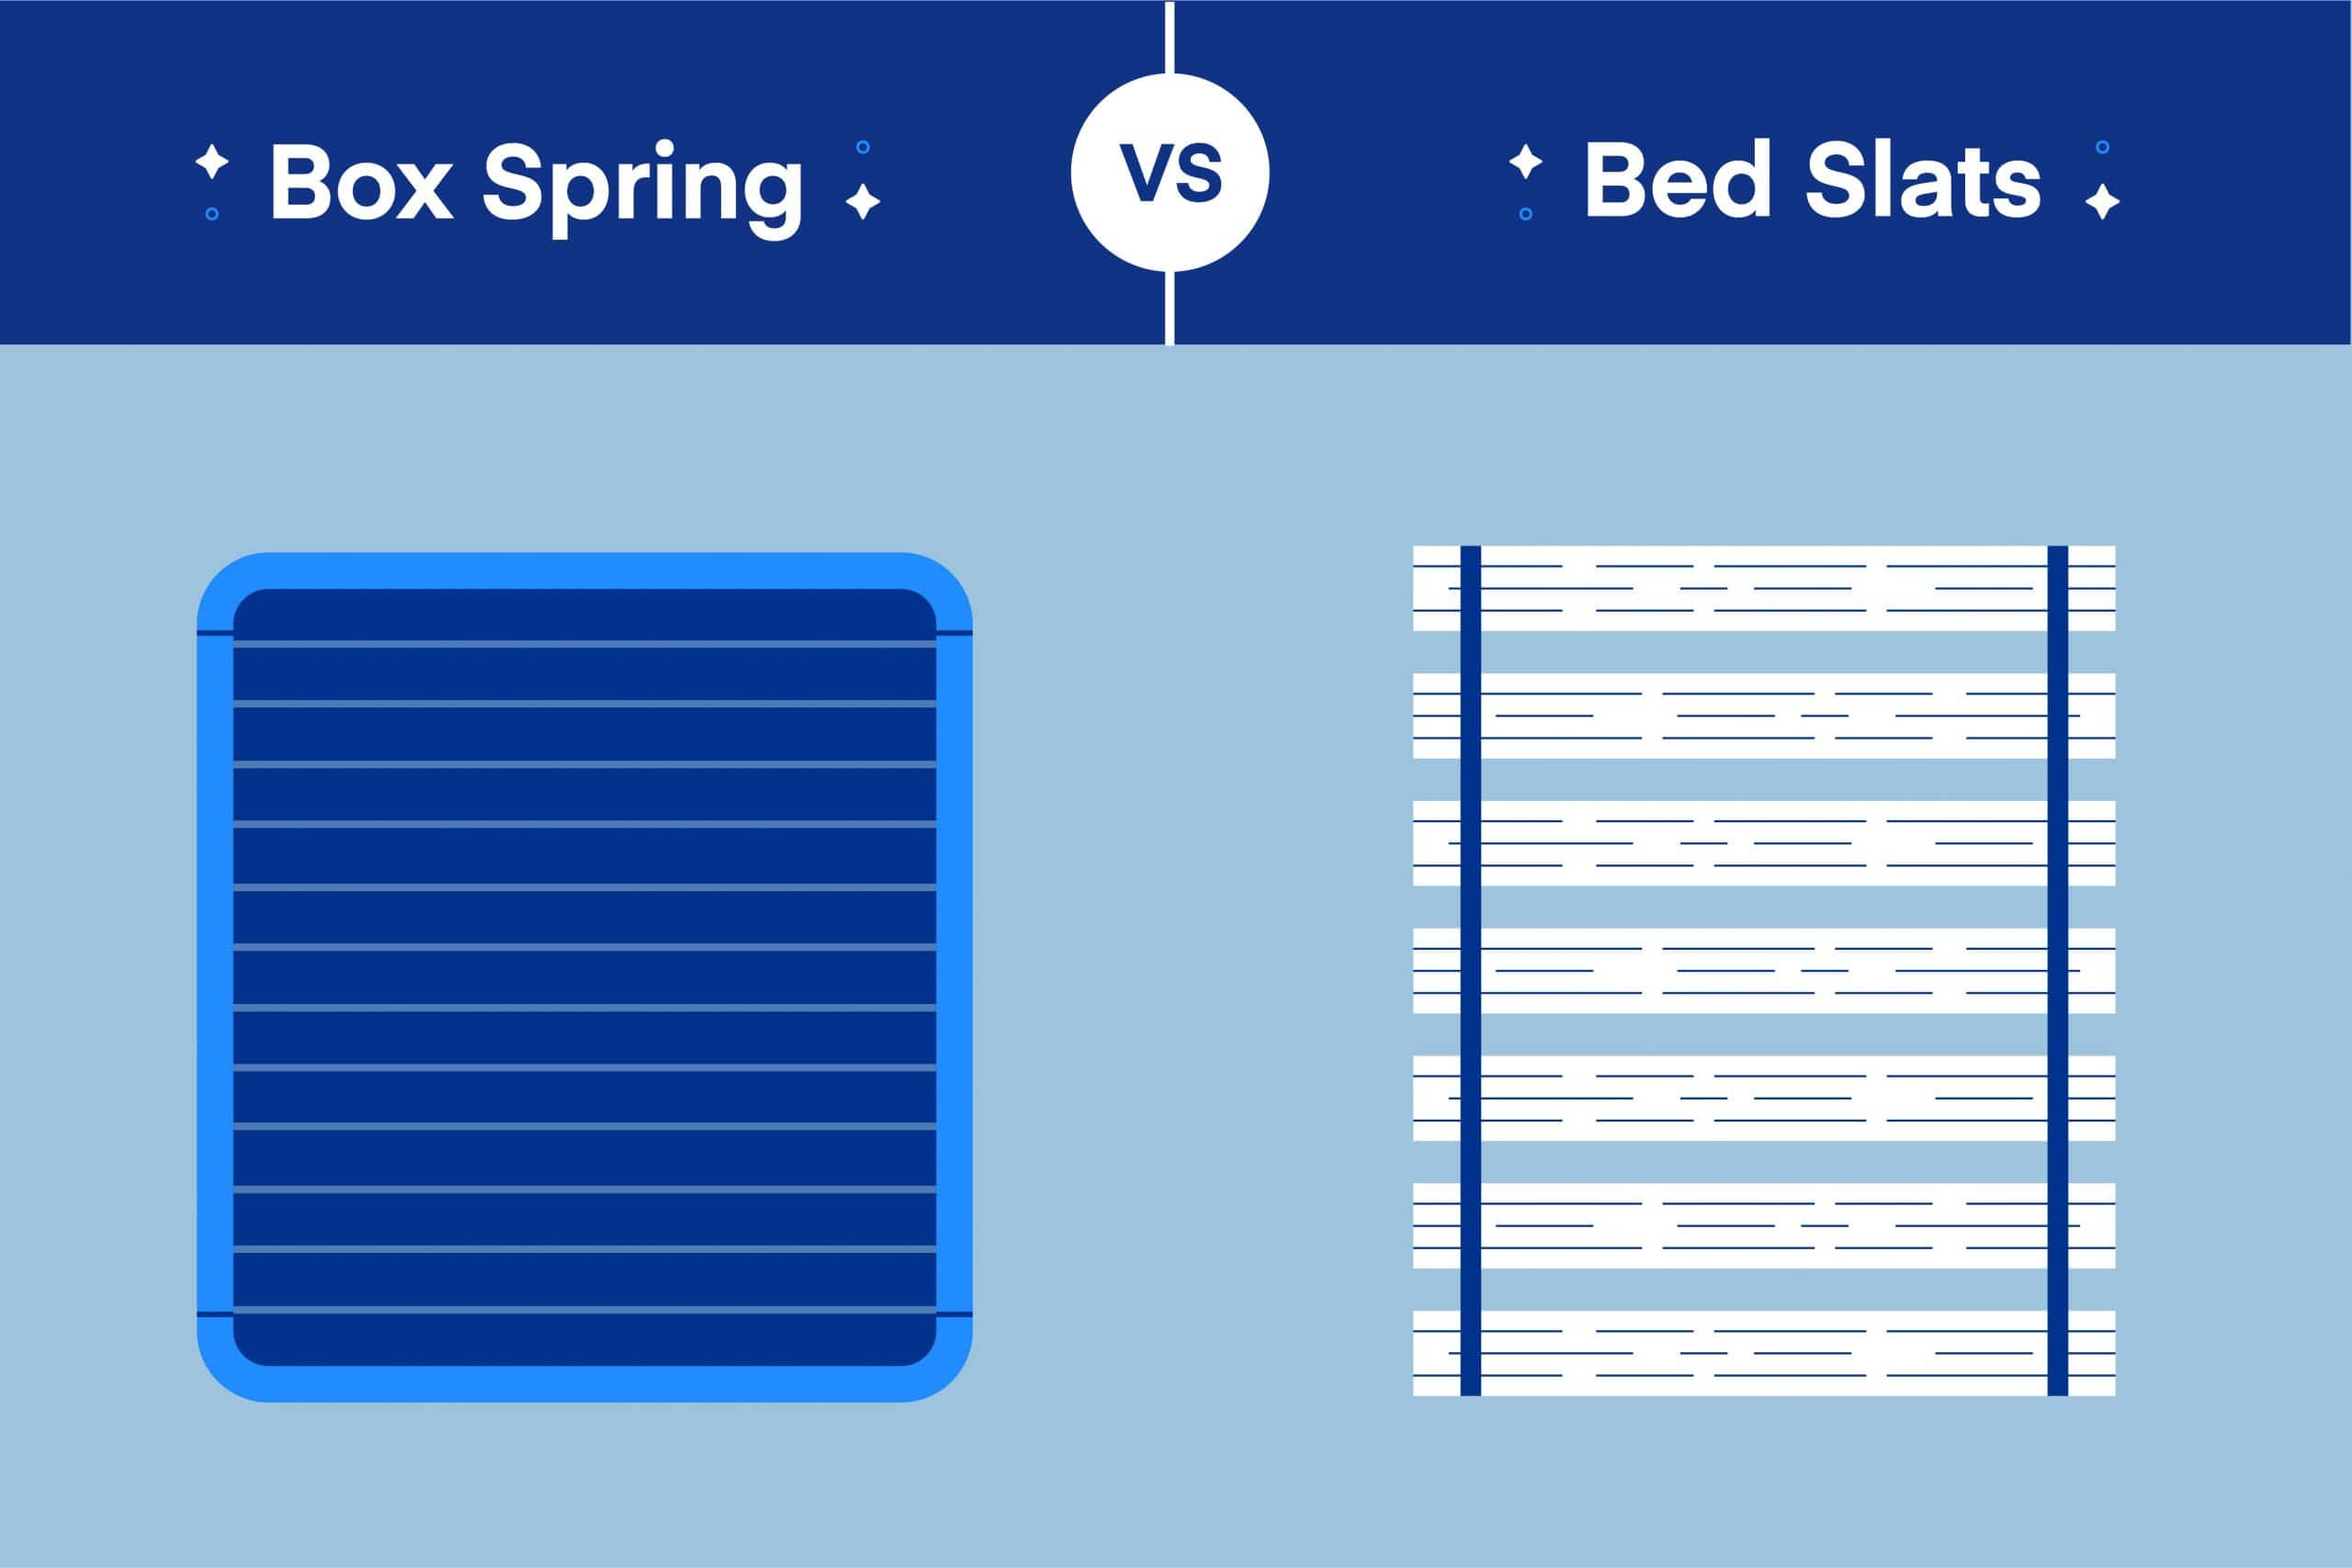 Bed Slats vs Box Spring: Which Should You Use?